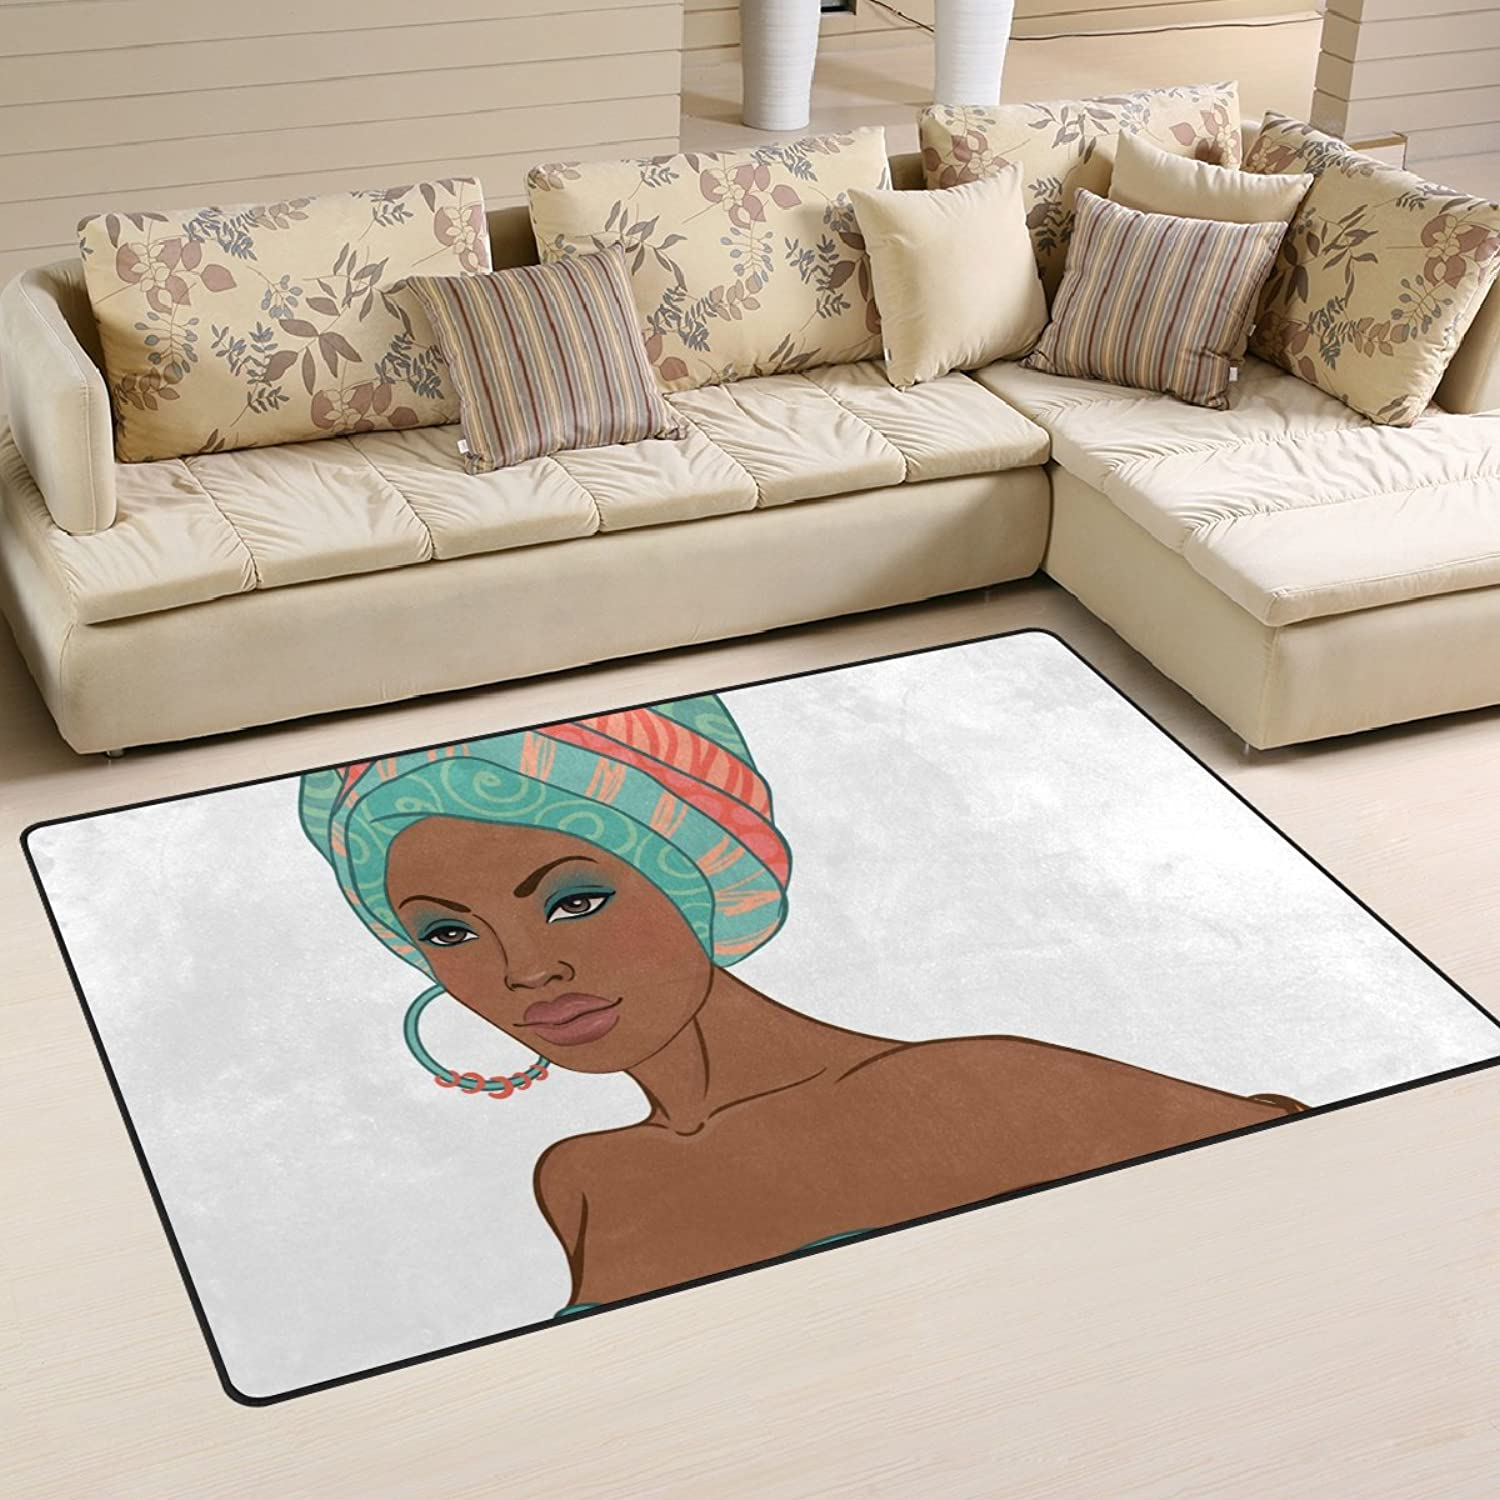 Area Rugs Doormats Gorgeous African Women 5'x3'3 (60x39 Inches) Non-Slip Floor Mat Soft Carpet for Living Dining Bedroom Home